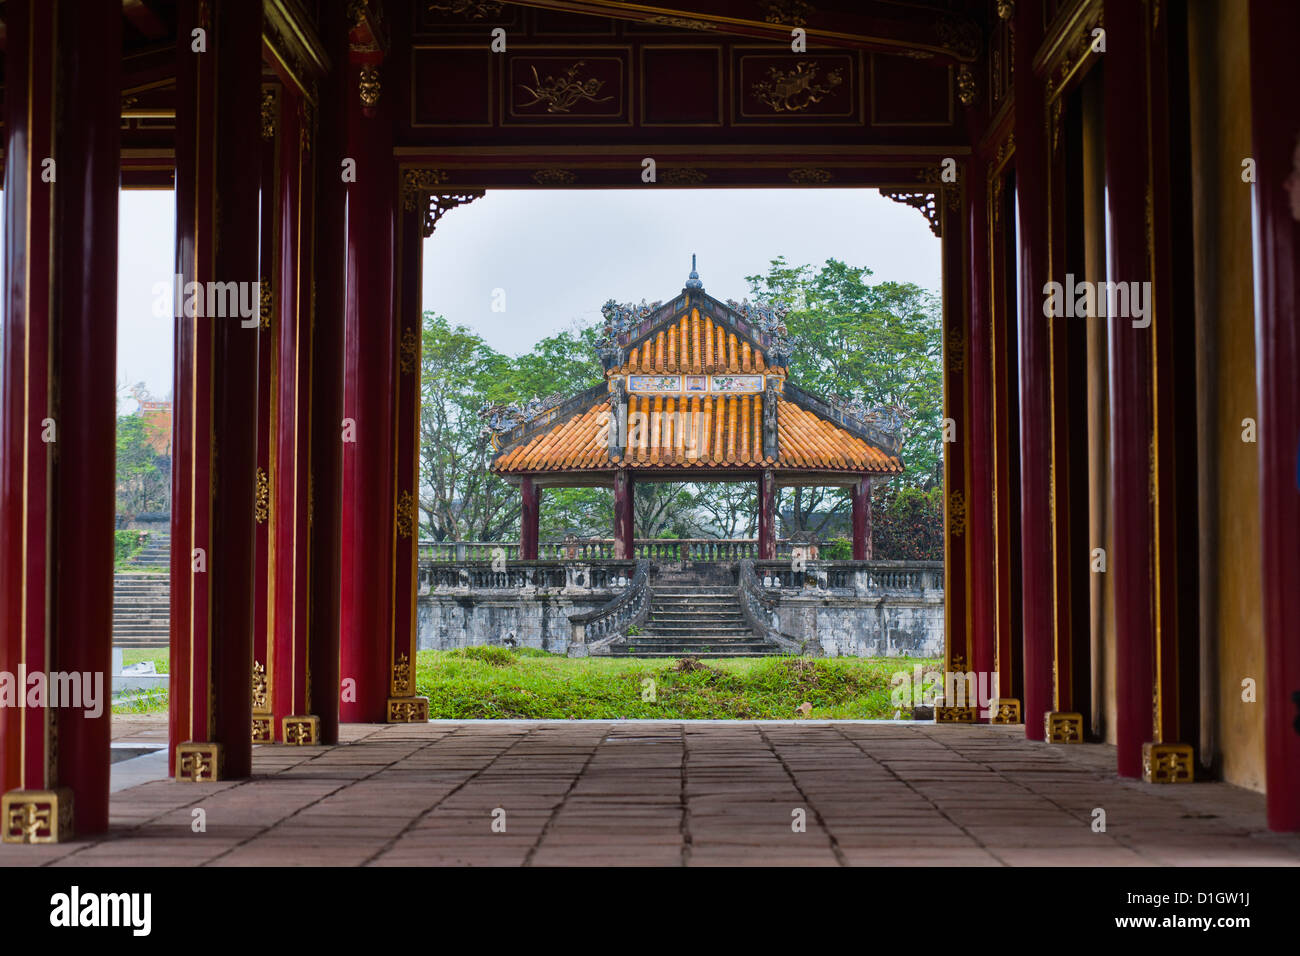 Pagoda in Hue Citadel, The Imperial City of Hue, UNESCO World Heritage Site, Vietnam, Indochina, Southeast Asia, - Stock Image